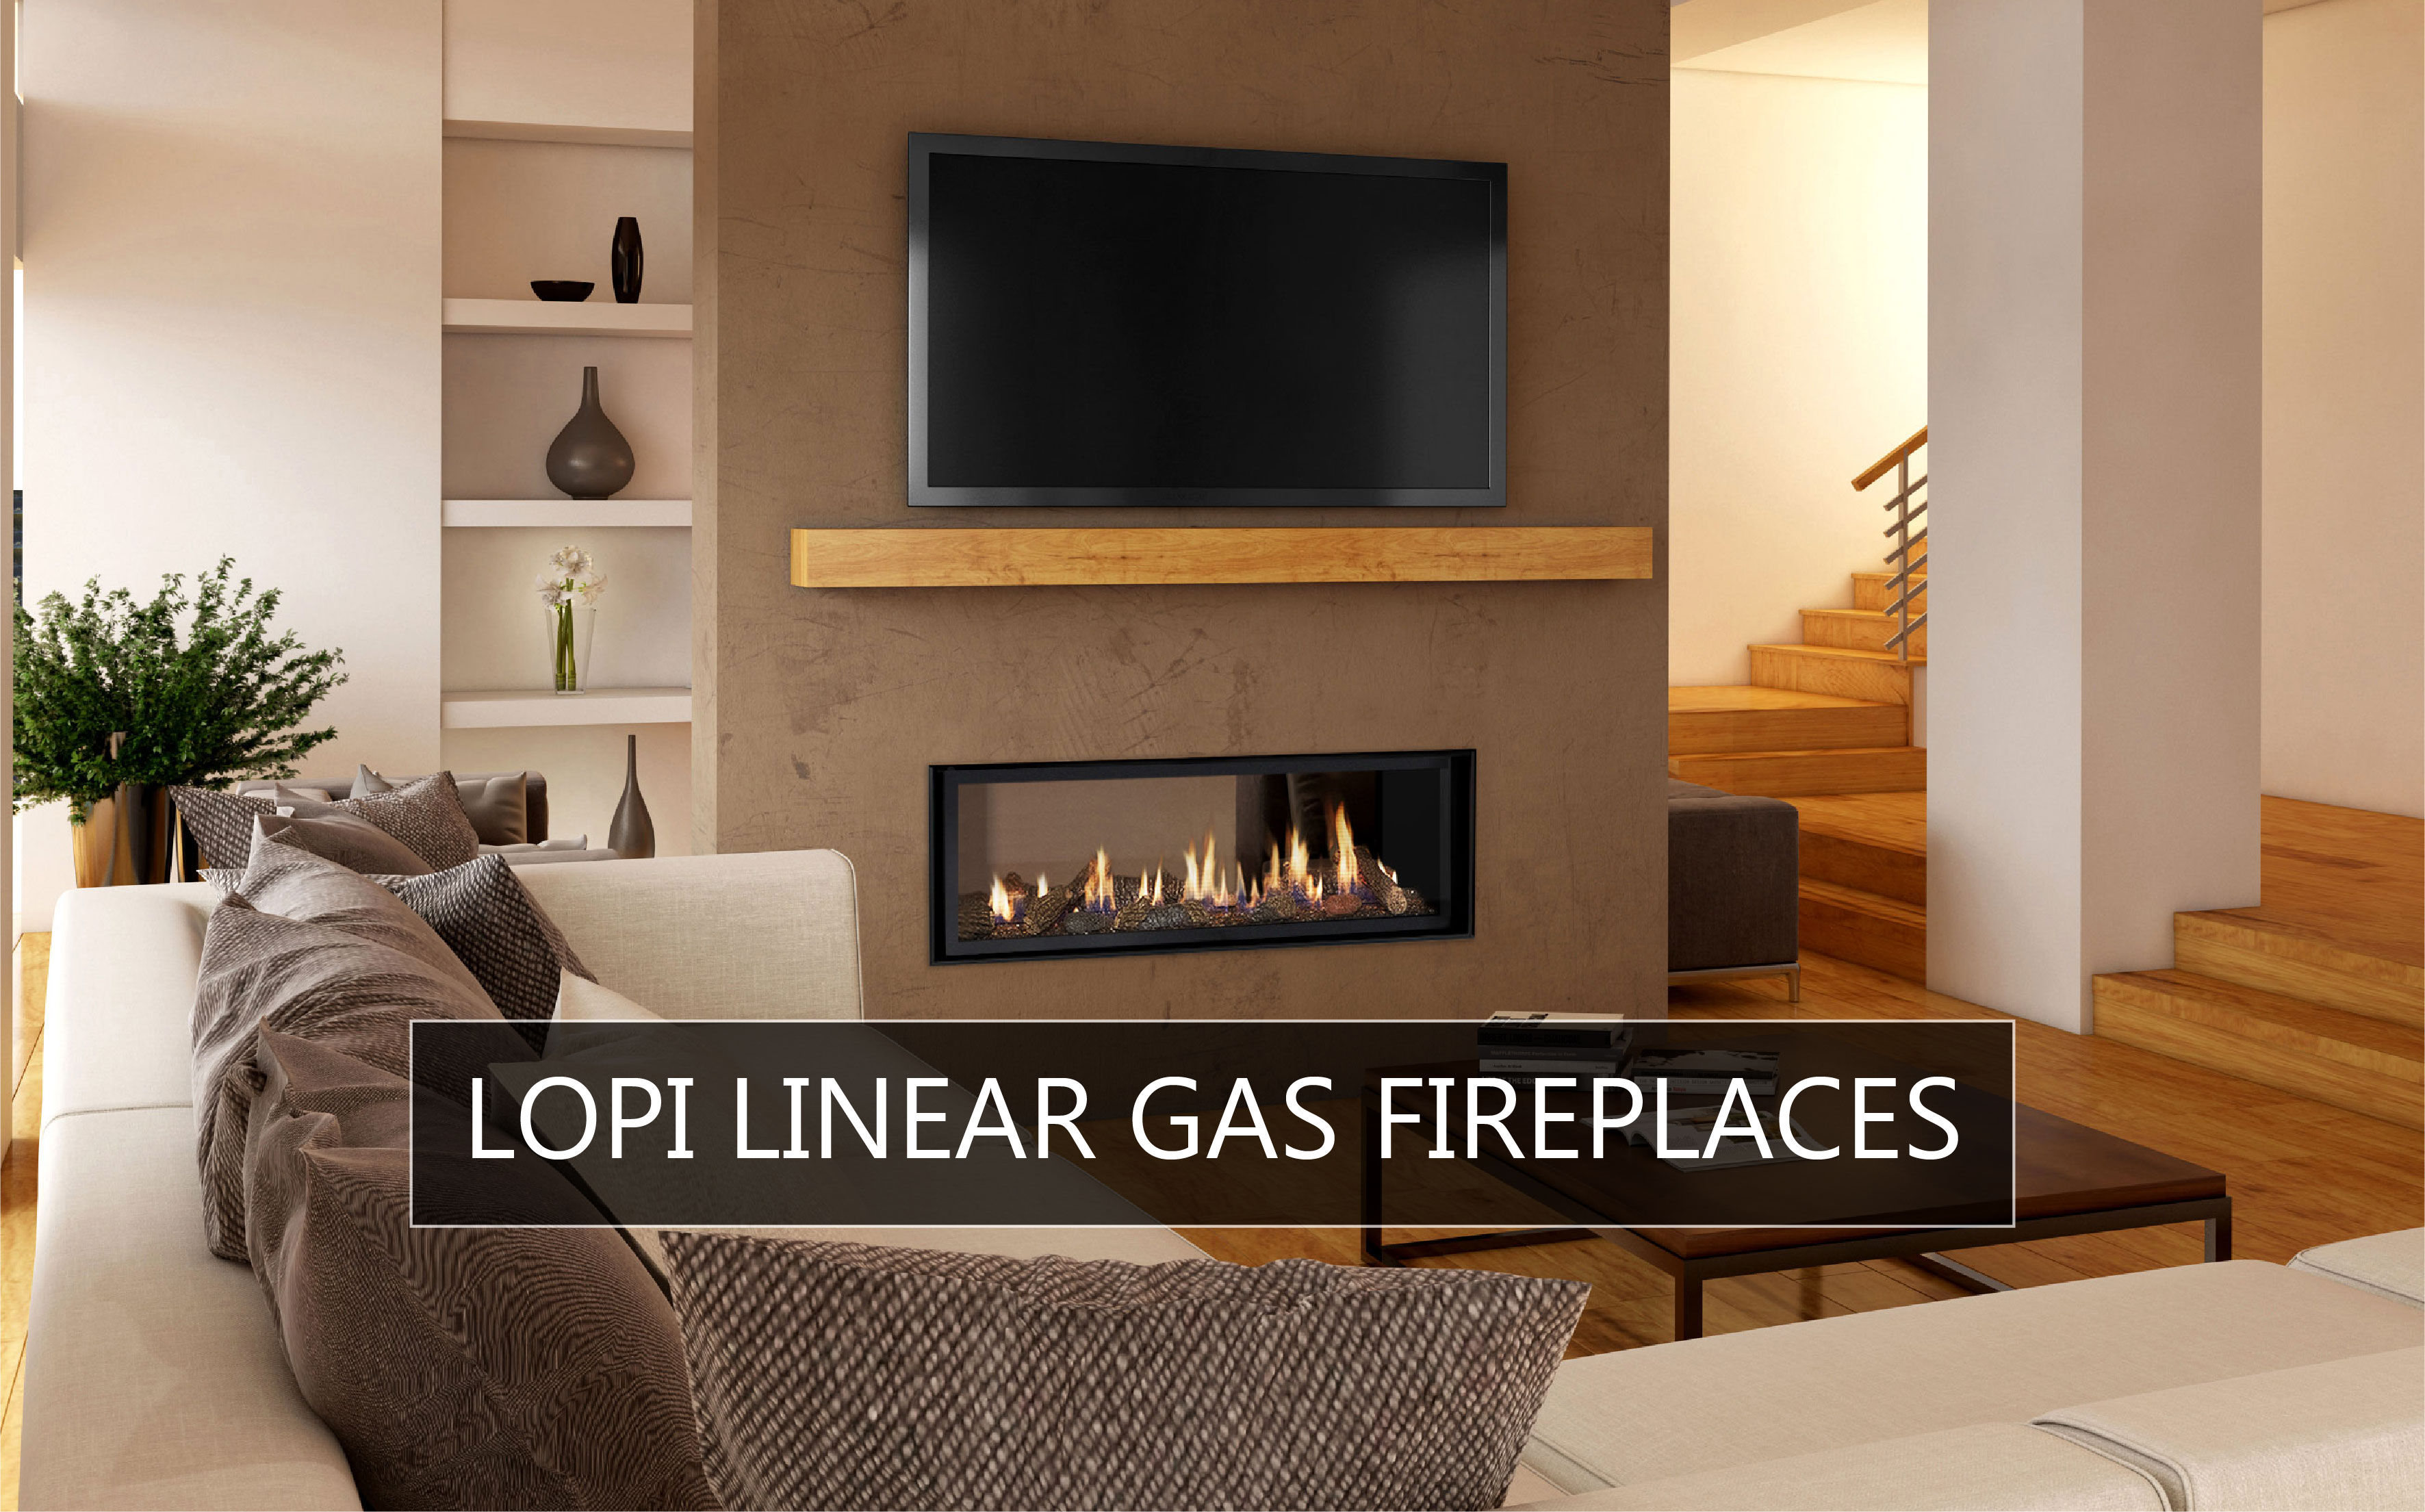 Lopi Linear Gas Fireplaces